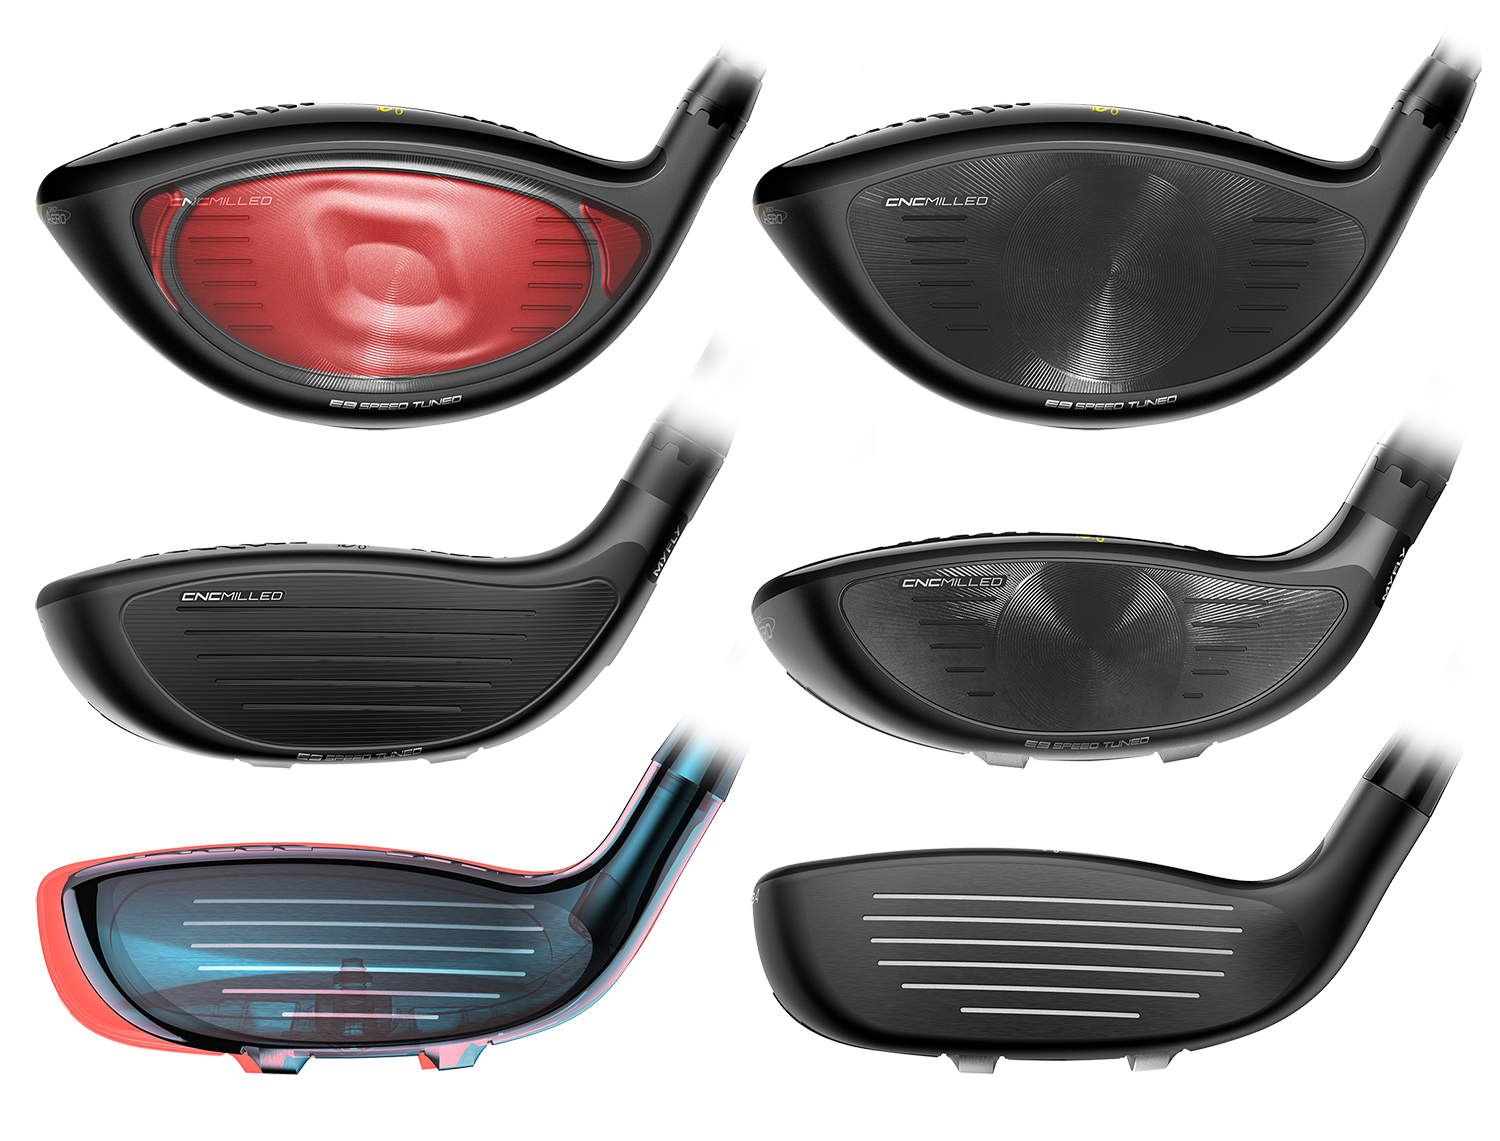 cobra king f9 clubs faces side by side